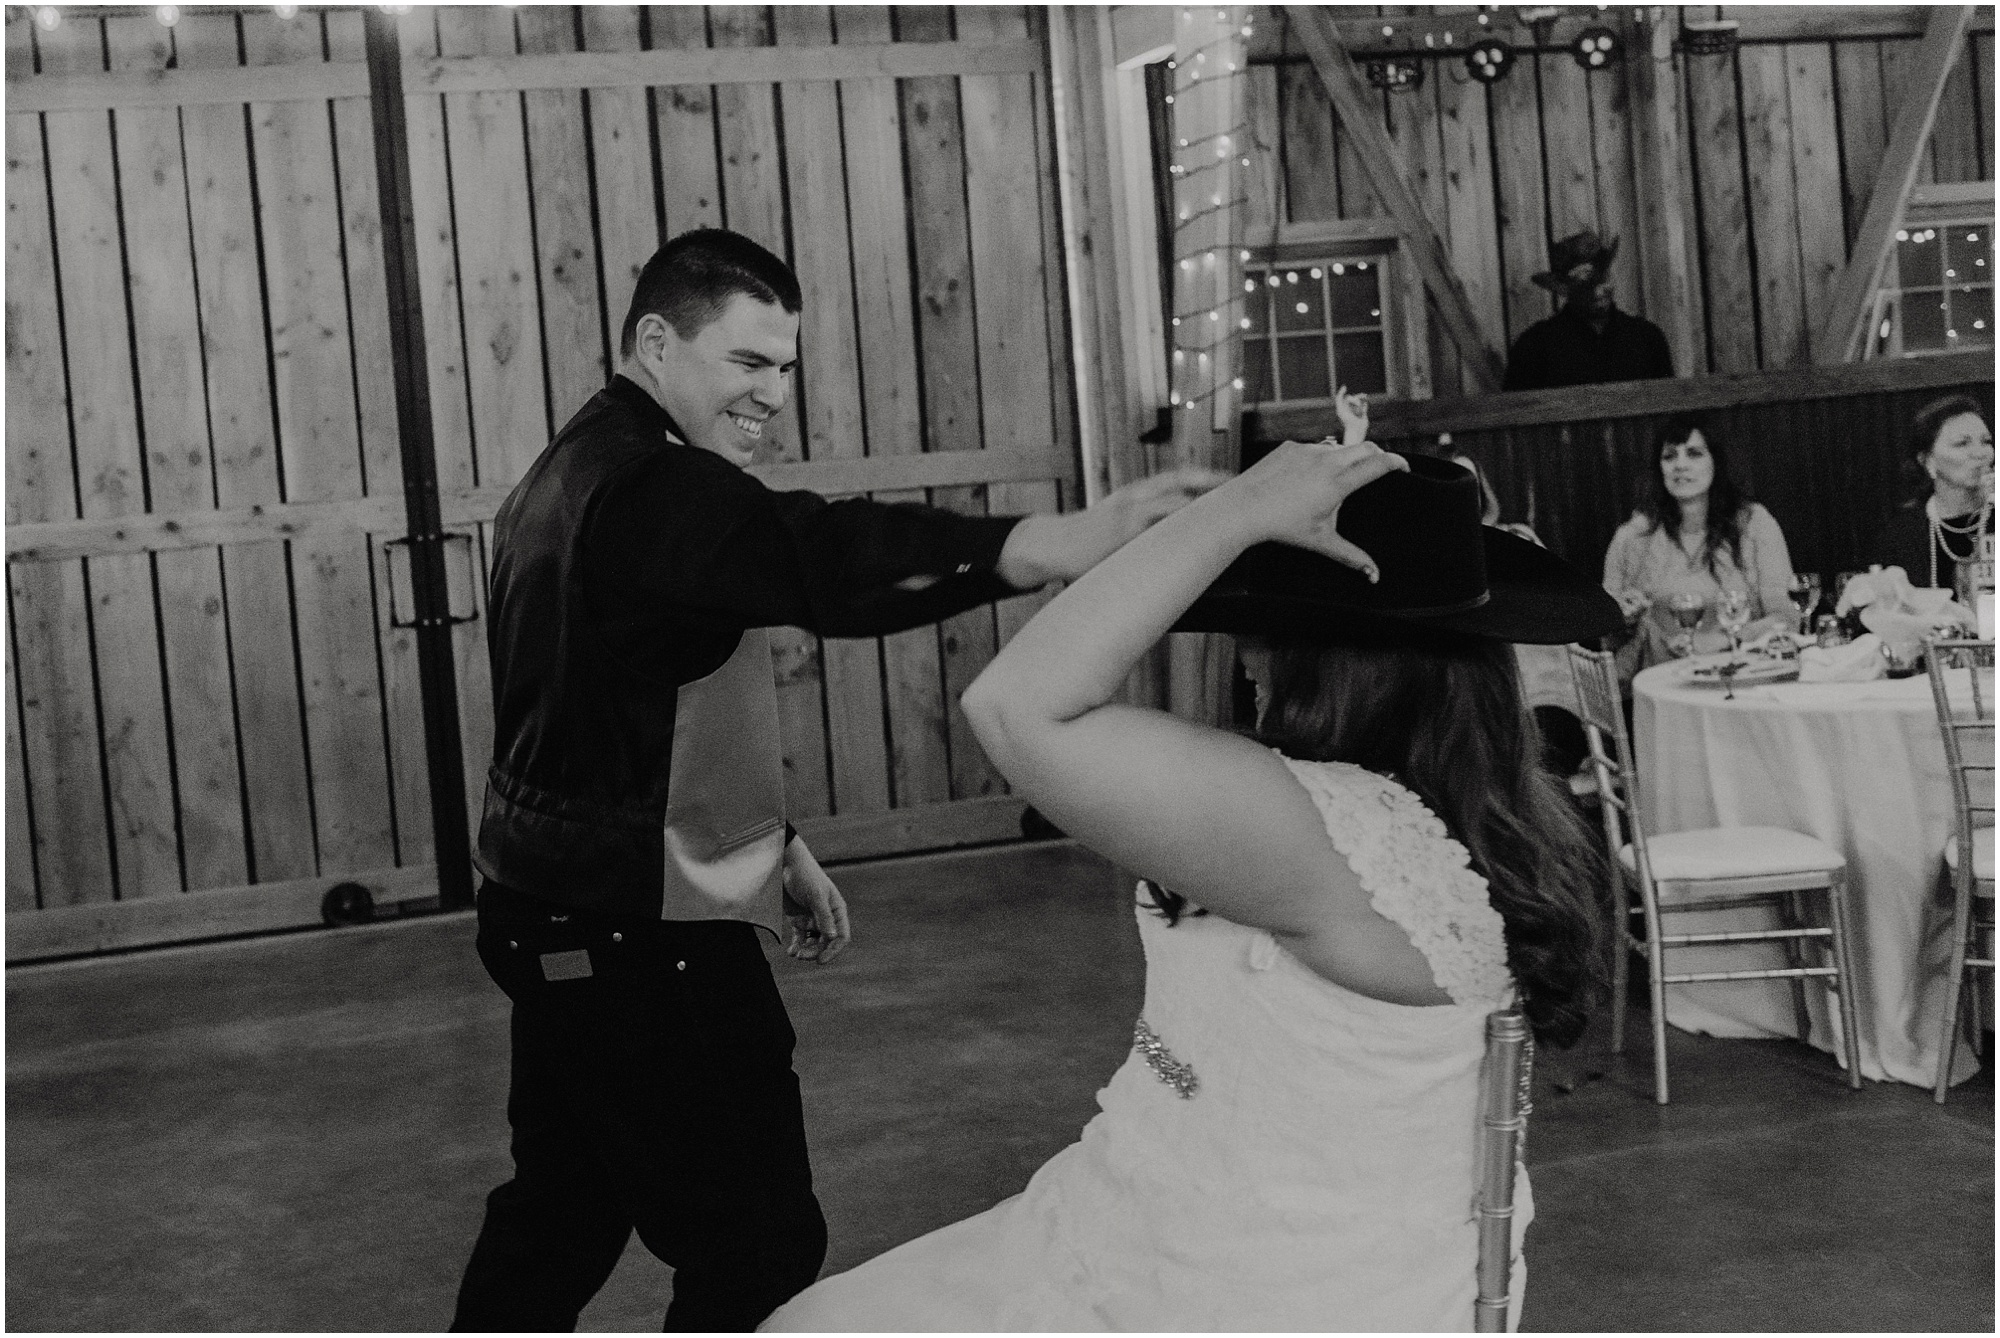 Groom places his cowboy hat on his bride during the garter toss.